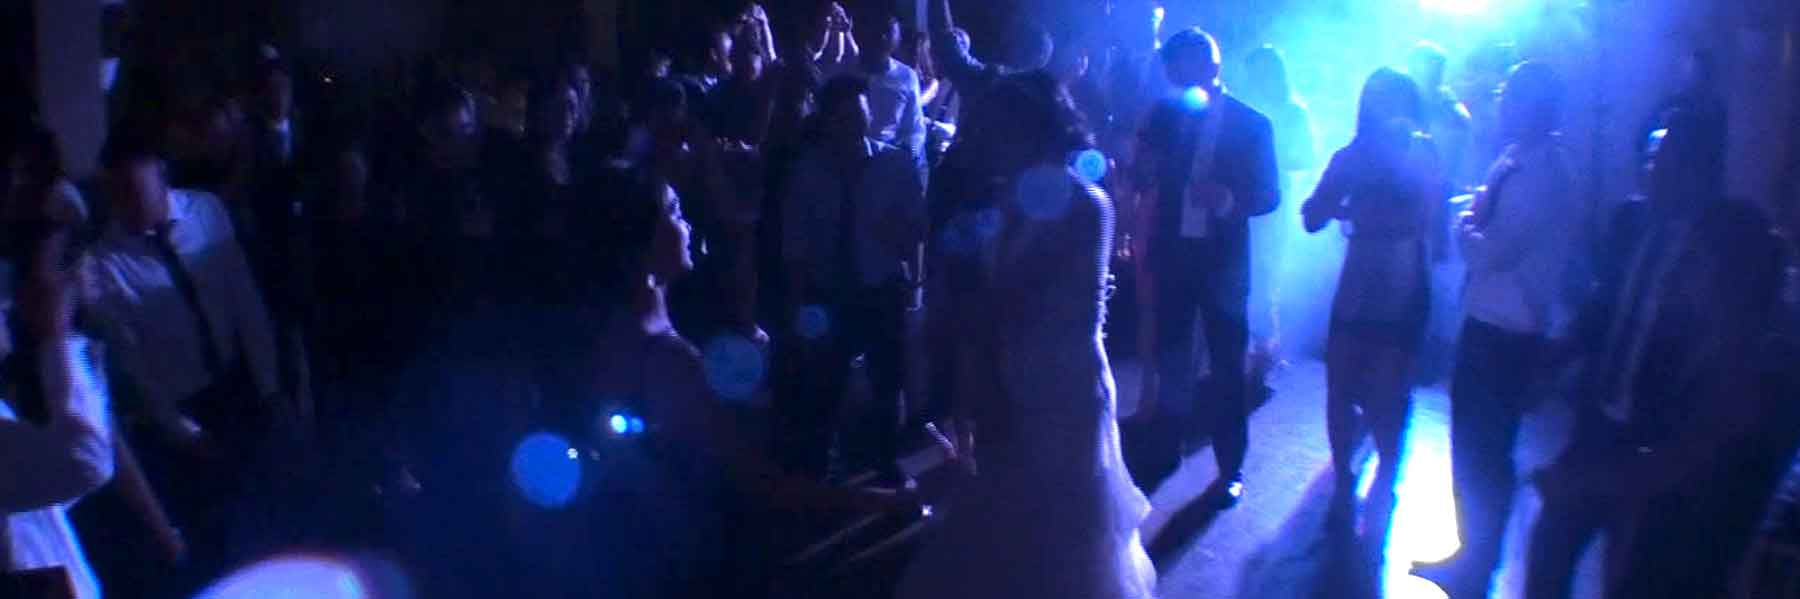 Packed-Dancefloor-at-Bayview-Golf-&-Country-Club-Thorn-Hill-Wedding